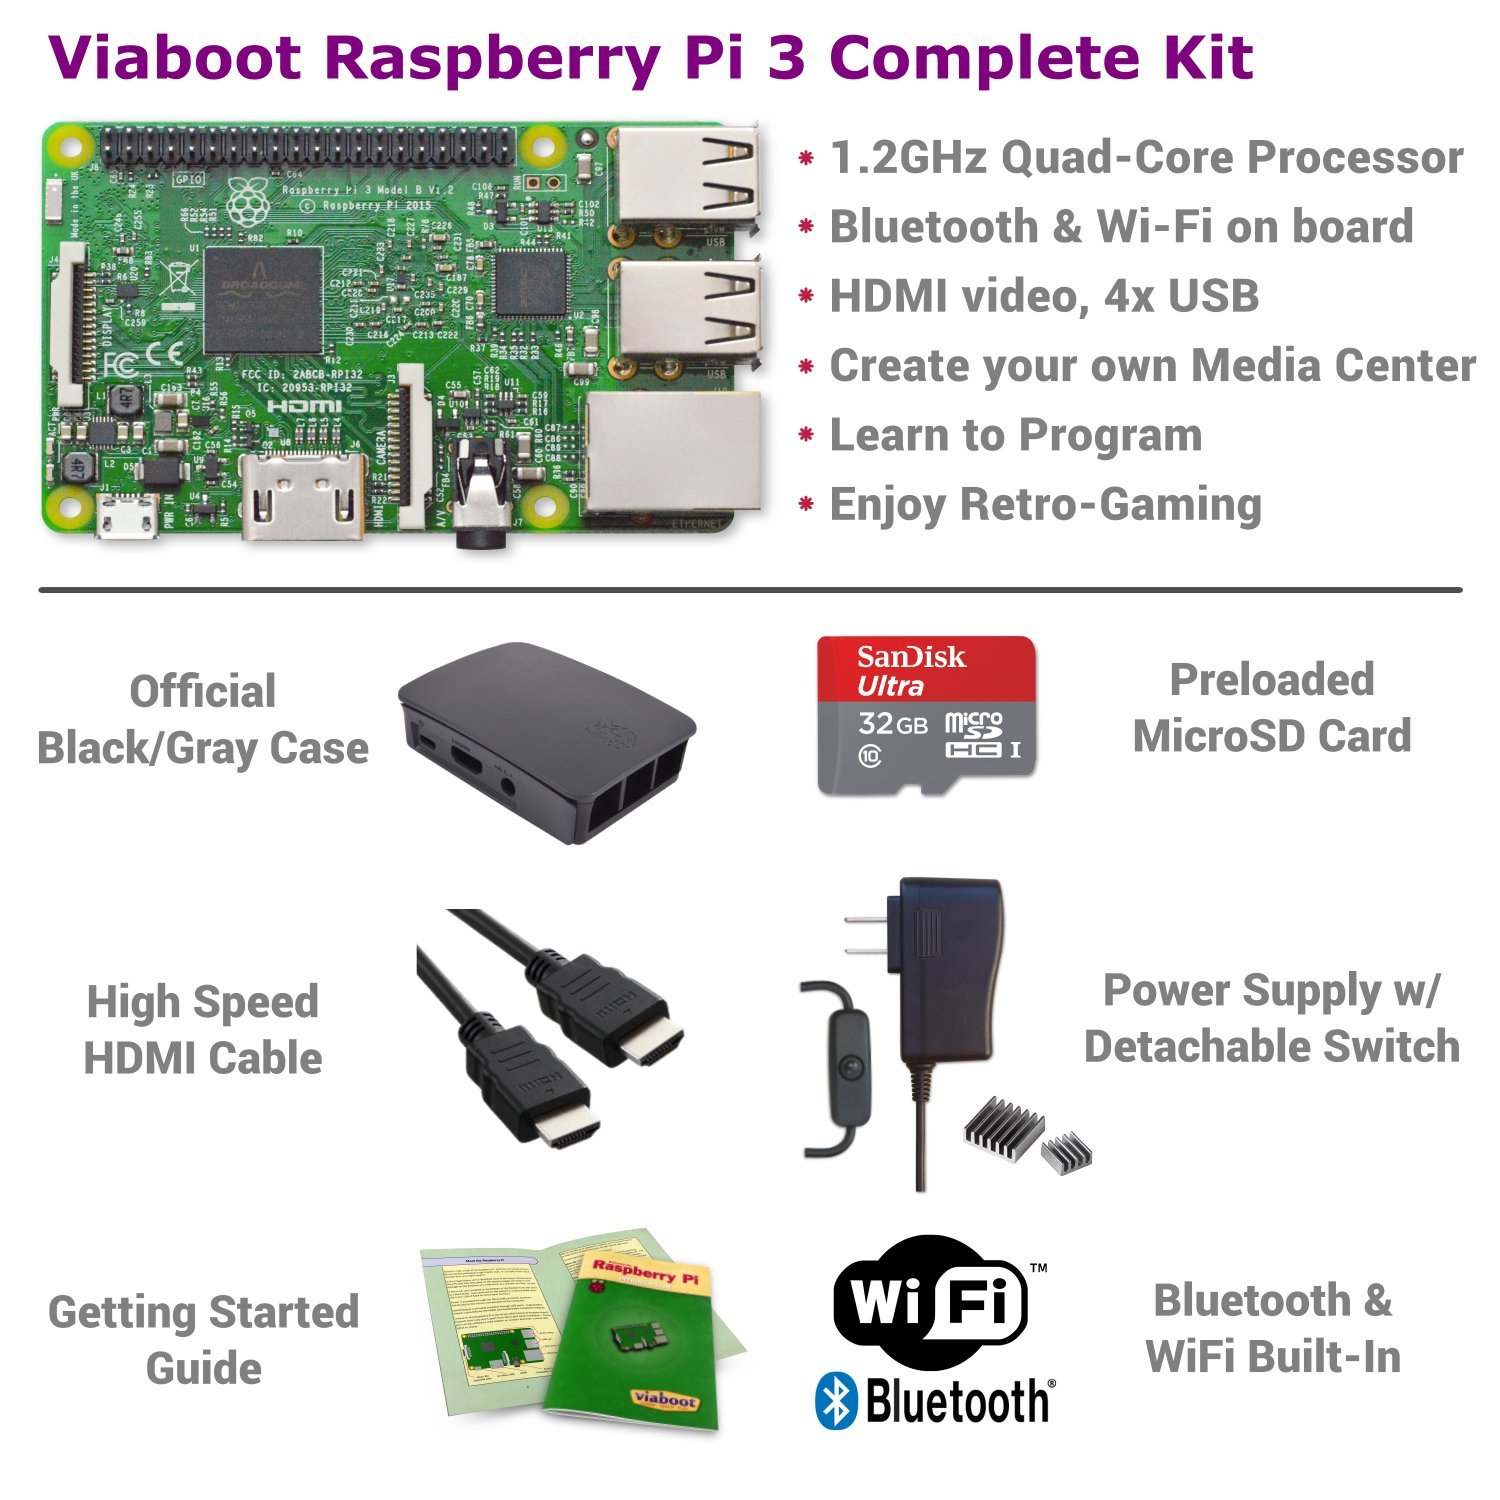 Viaboot Raspberry Pi 3 Complete Kit — 32GB Official Micro SD Card, Official Black/Gray Case Edition by Viaboot (Image #2)